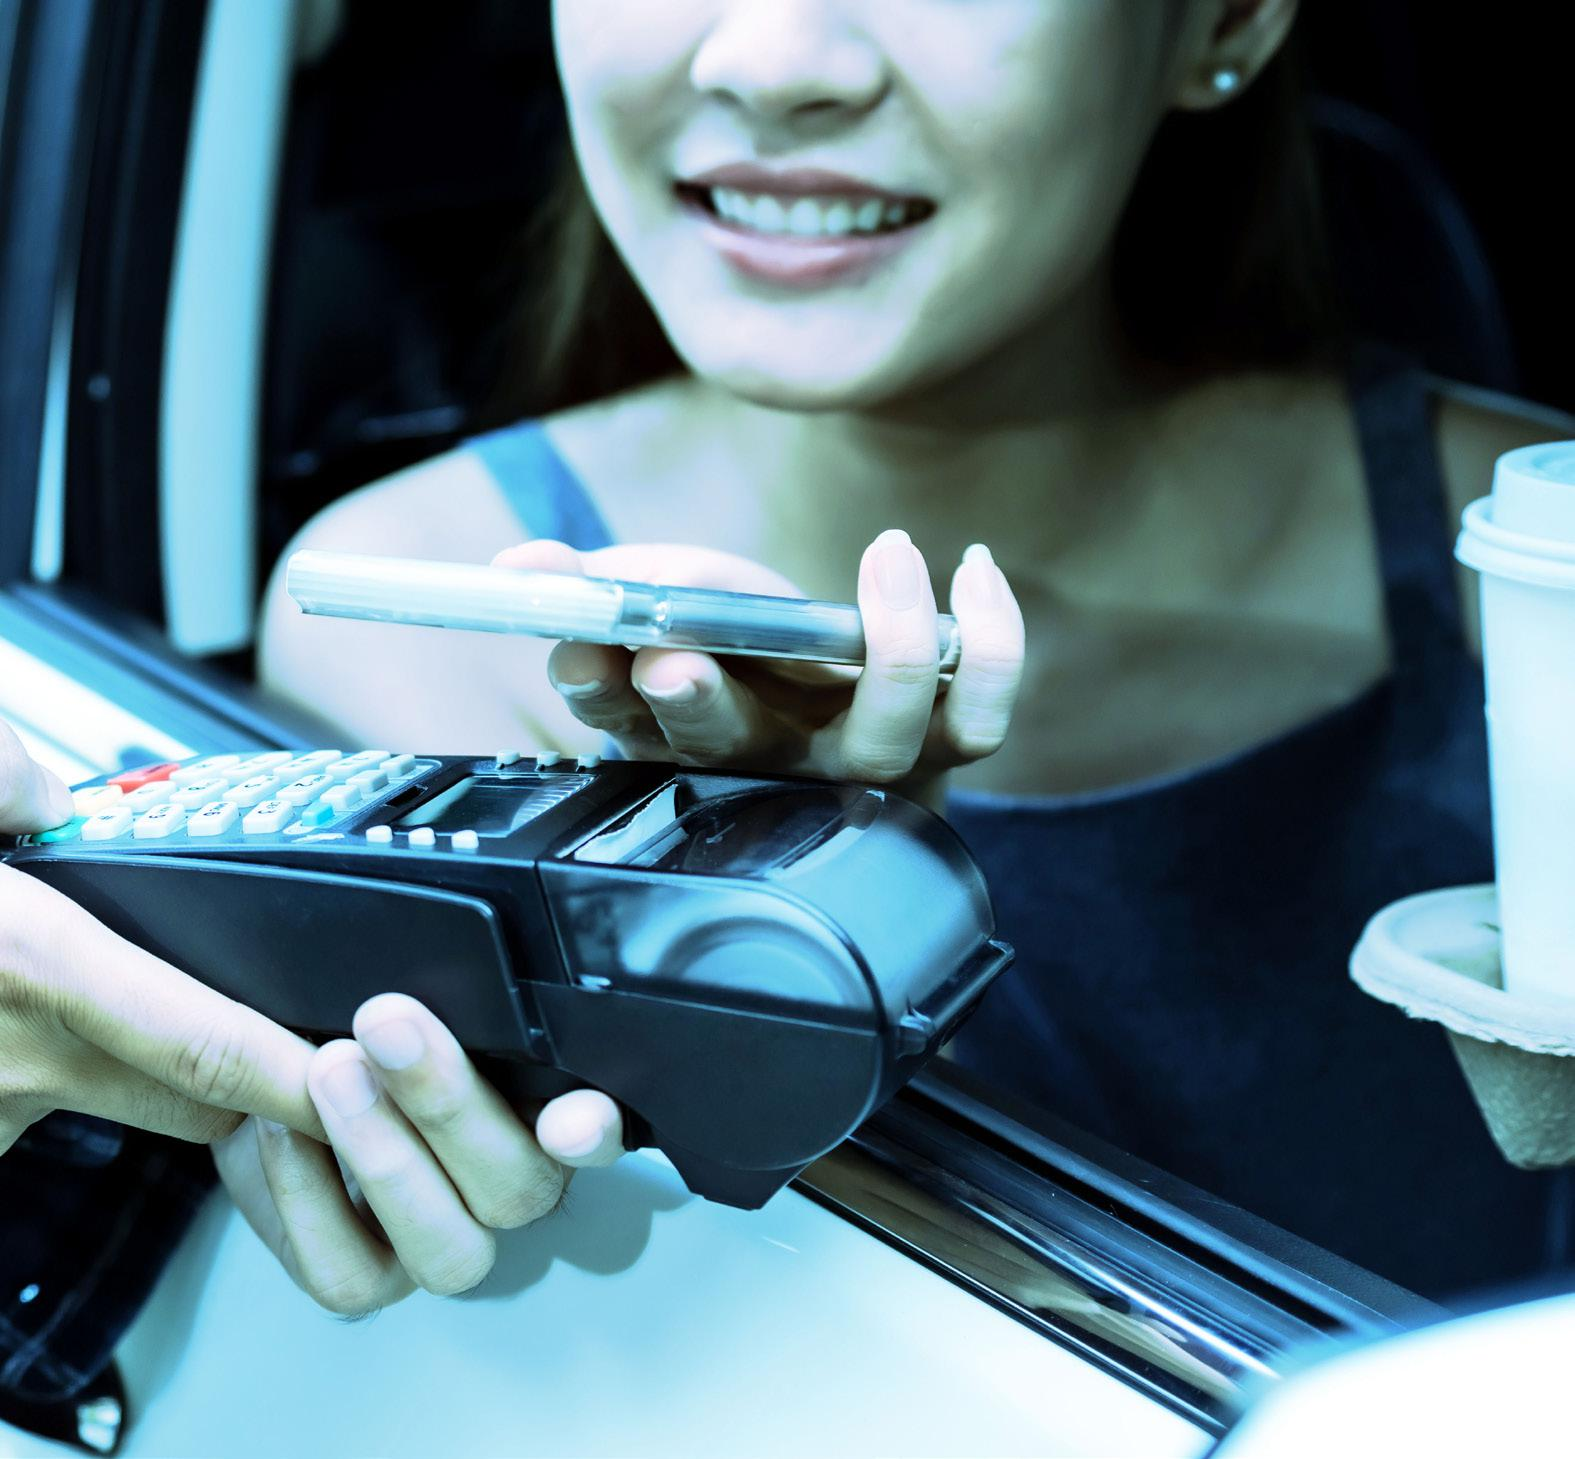 Fast Food, Drive Through and Direct to Car Shopping … Made Faster and Smarter With Foresense.2